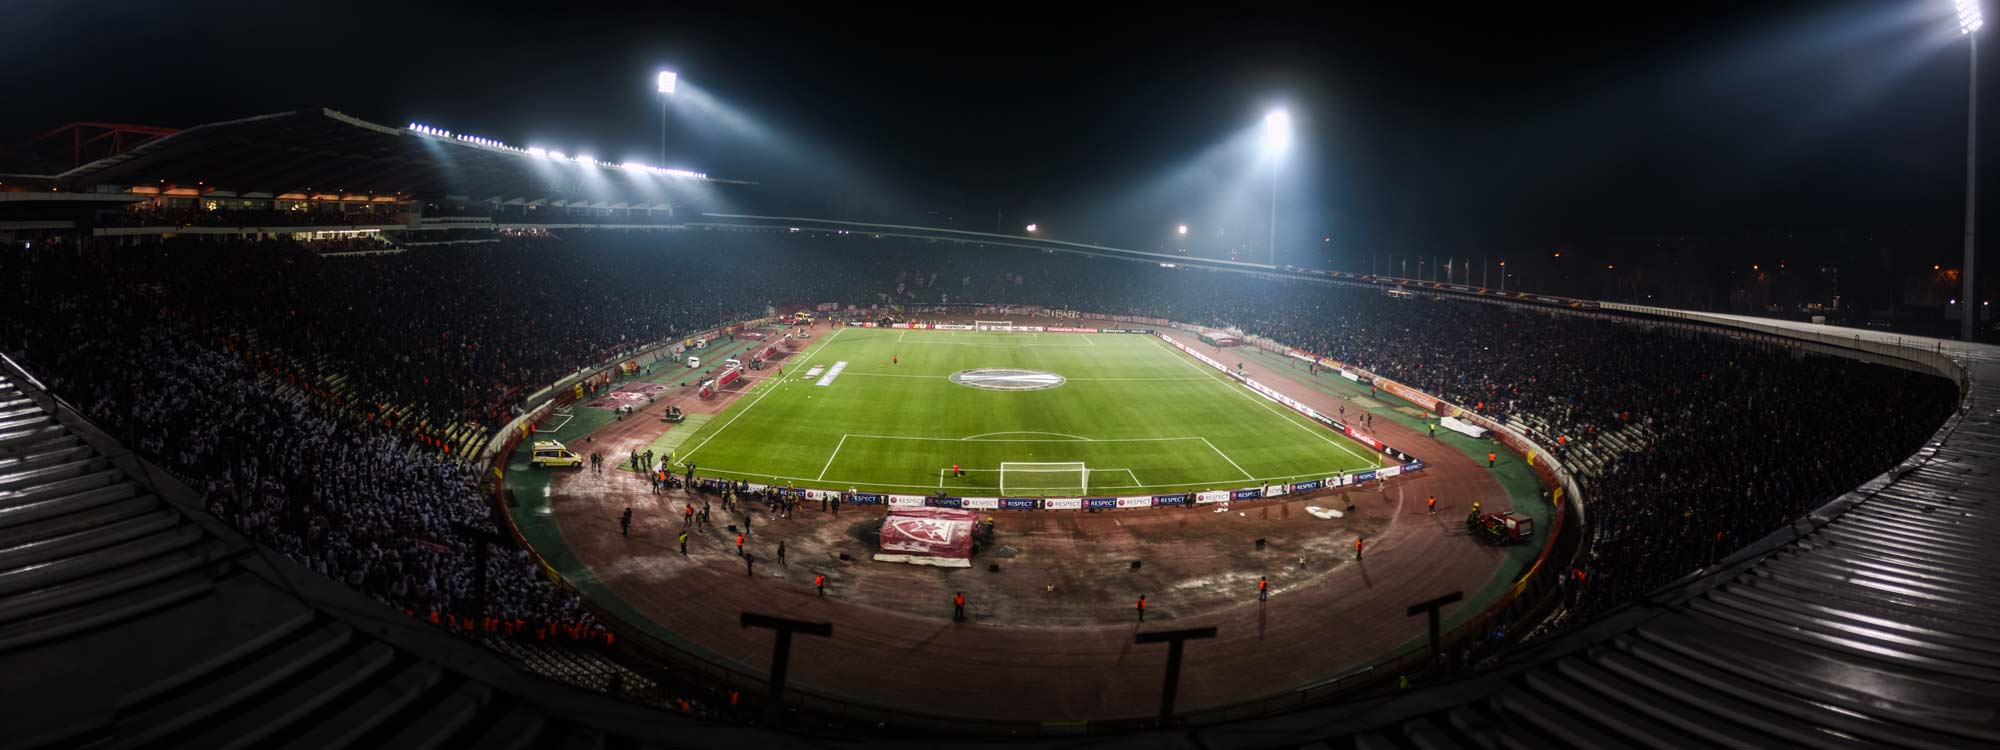 stadium-football-soccer-sport-lighting